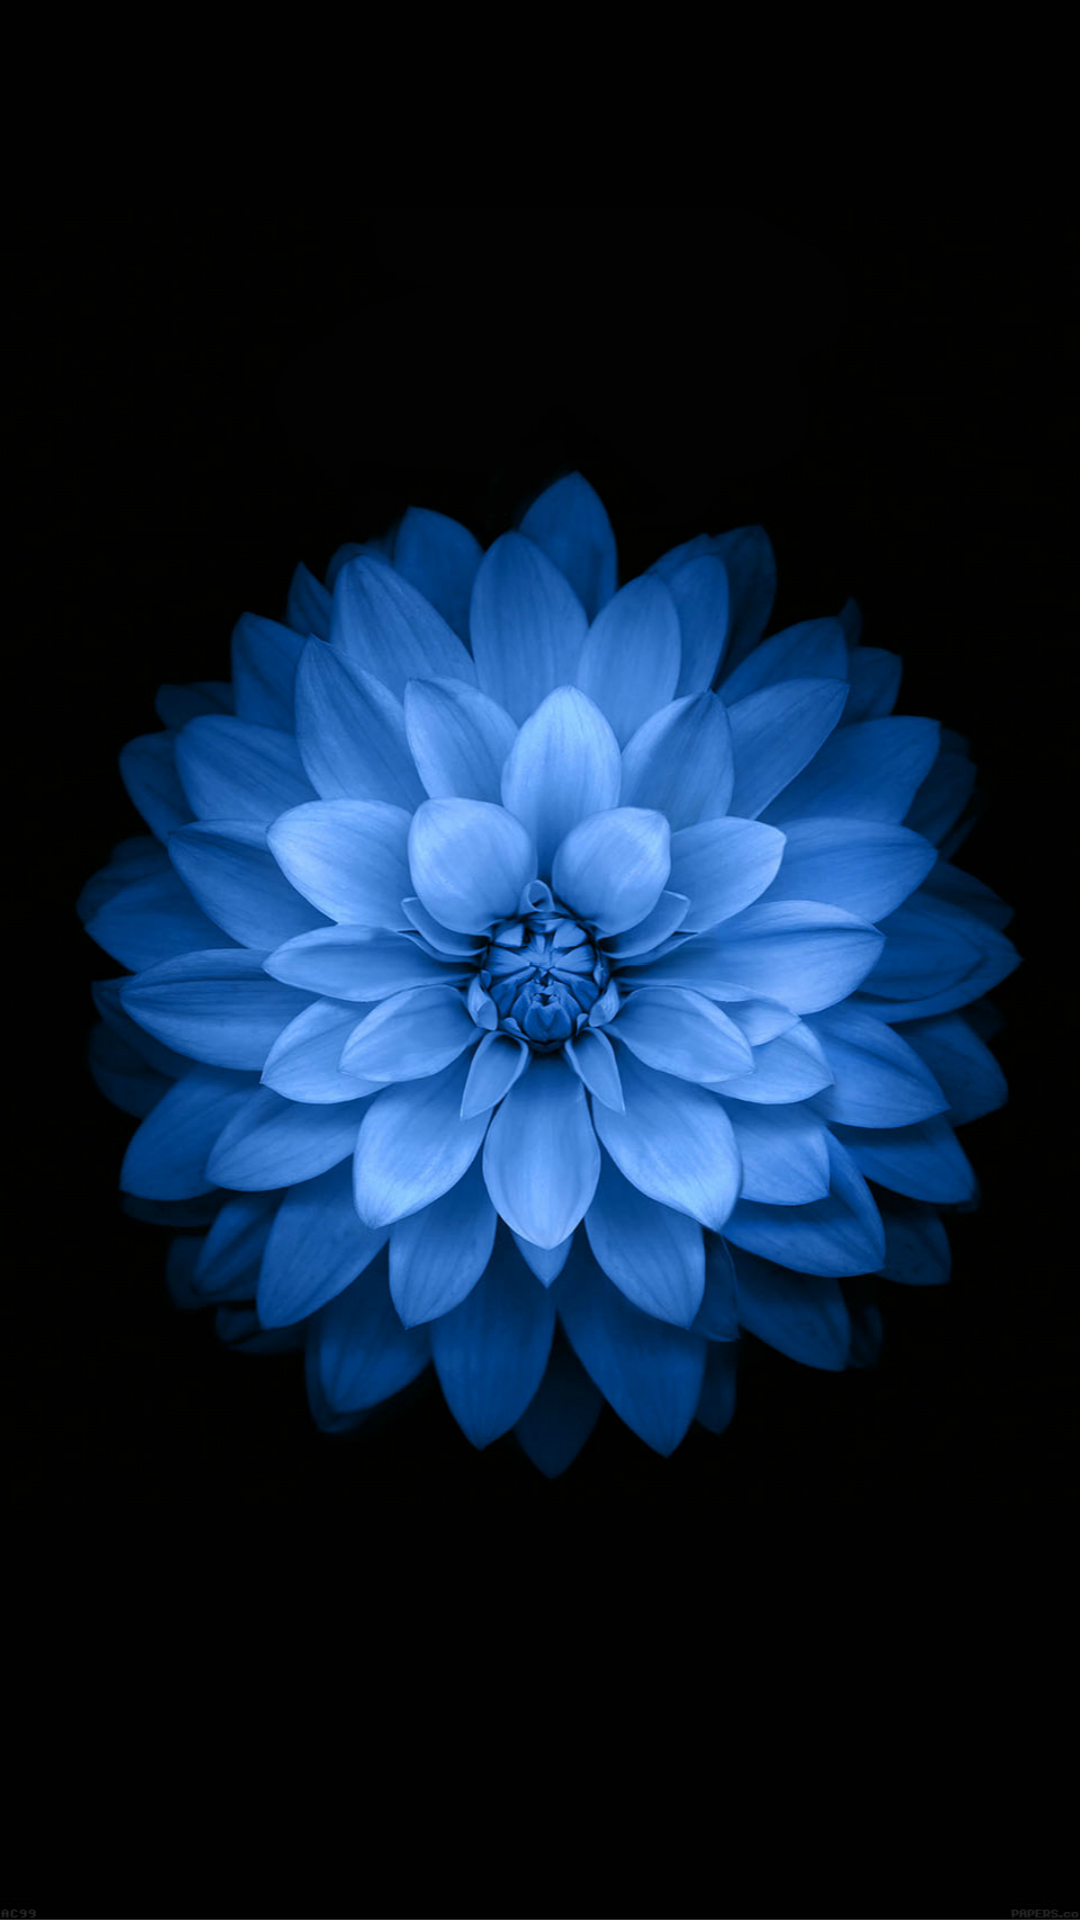 iPhone Wallpaper flower Blue Lotus Flower